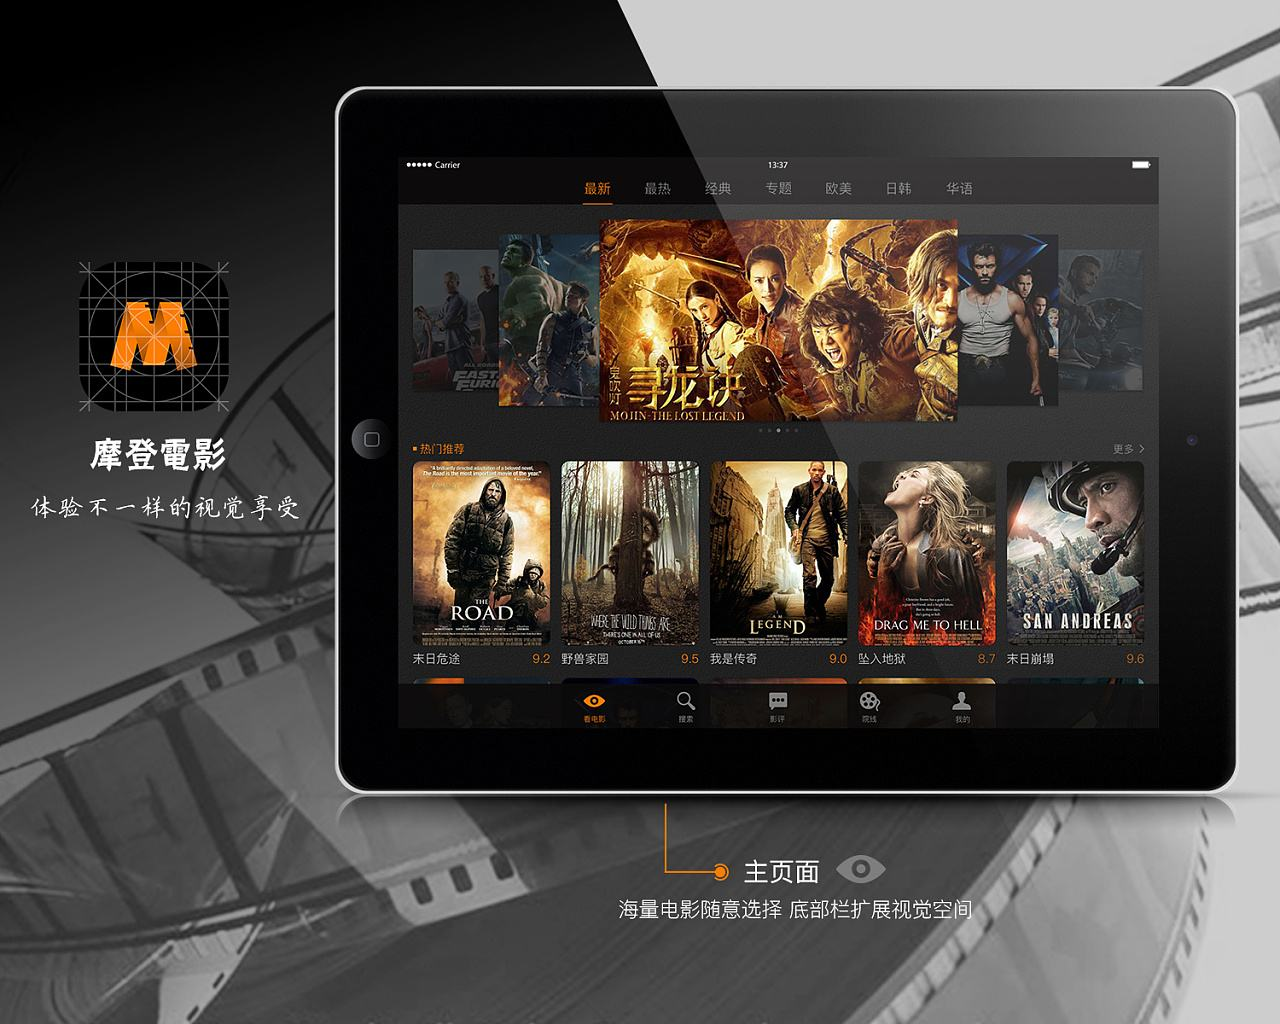 """<strong>ipad<\/strong> movie app"""" style=""""max-width:410px;float:left;padding:10px 10px 10px 0px;border:0px;"""">Once you have selected your movie, get familiar with its context. So before you have even seen the movies you should get yourself familiar with it. Have some idea about the actors in the film like what films they have done in the past? Have they won any awards for past performances, are they known for a certain style? Etc. Is the movie based on any historical event or book? Other things that would be useful to note is, is the film a sequel or a remake? By learning this information about the film means you will be able to make some comparisons in your review, like the actors performance in this film compared to pass performances, or how the remake compares to the original.</p> </p> <p>But I have good news! Like you, our first feature was met with empty distribution promises and crappy deals. So by necessity, we started selling our title on Amazon as both a physical DVD and a video on demand download. At first, none of the producers liked that idea. I mean, even if a traditional deal sucks, at least there is still validation of seeing your title on the shelves at the local video store…</p> </p> <p>Get all fixed up. Just because you're not going out doesn't mean you can't look good! Girls, put on that makeup and put on whichever sexy clothes are comfiest. Guys, spritz on the cologne and style your hair-she'll love it! Making the night feel like a real date means looking like you're on a real date. Your soul mate will appreciate the efforts you put forth to look cute even after you've been married awhile.</p> </p> <p>Meanwhile, you also can't find a good review of the film… and I can assure you it's not as bad as the liberal critics make it out to be. It's a pretty good Movie… but the reviewers have decided, since they don't want you to absorb the content, to sell out any remnant of objectivity they ever had and over-shred the execution of the production. Again, y"""